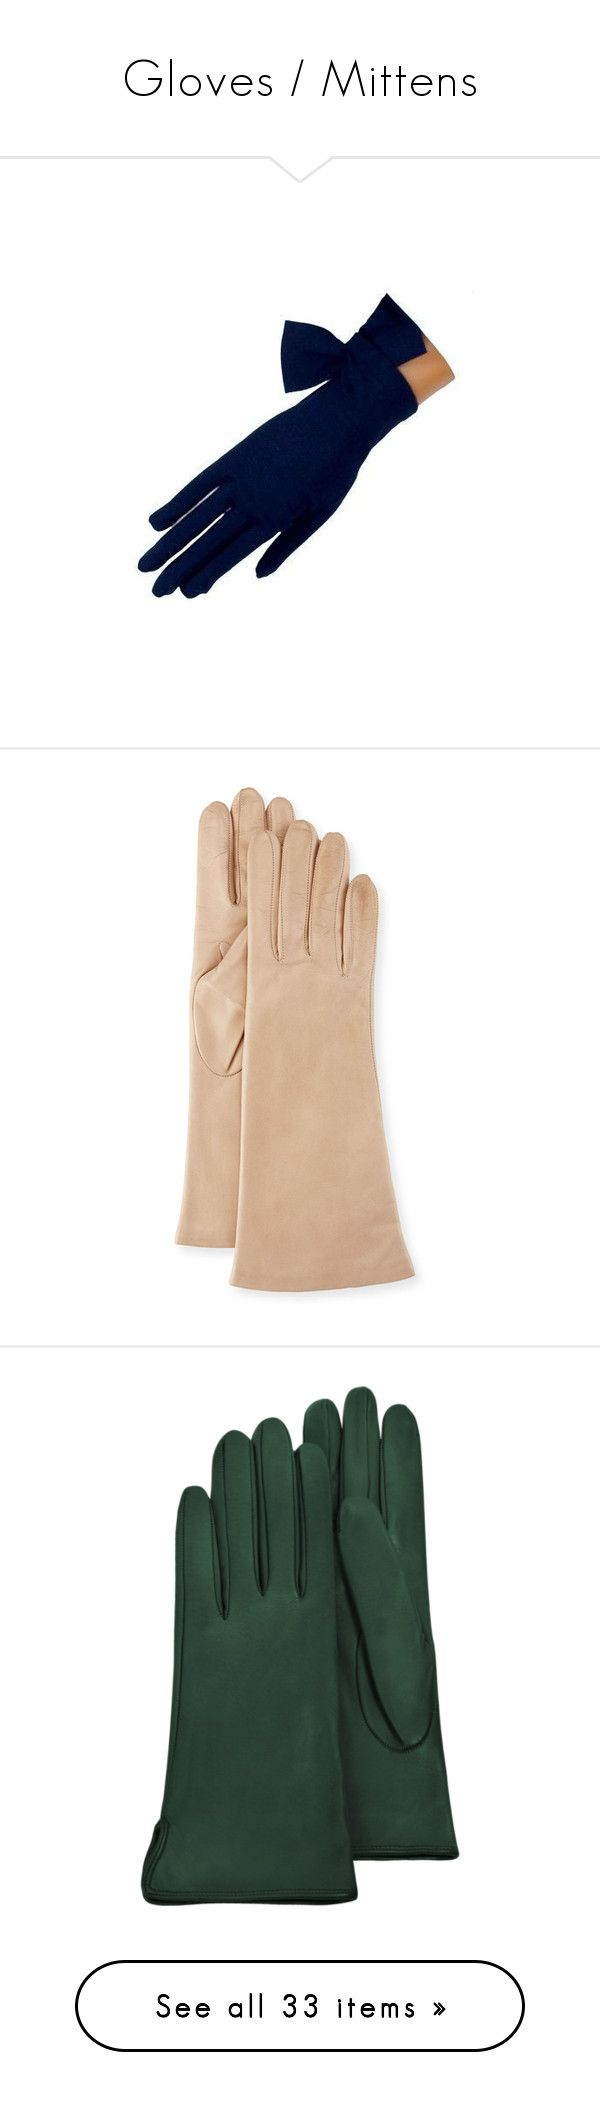 """""""Gloves / Mittens"""" by theprissydiary ❤ liked on Polyvore featuring accessories, gloves, accessories gloves, nude, nappa leather gloves, portolano, portolano gloves, accessories - gloves, silk lined gloves and calfskin gloves"""